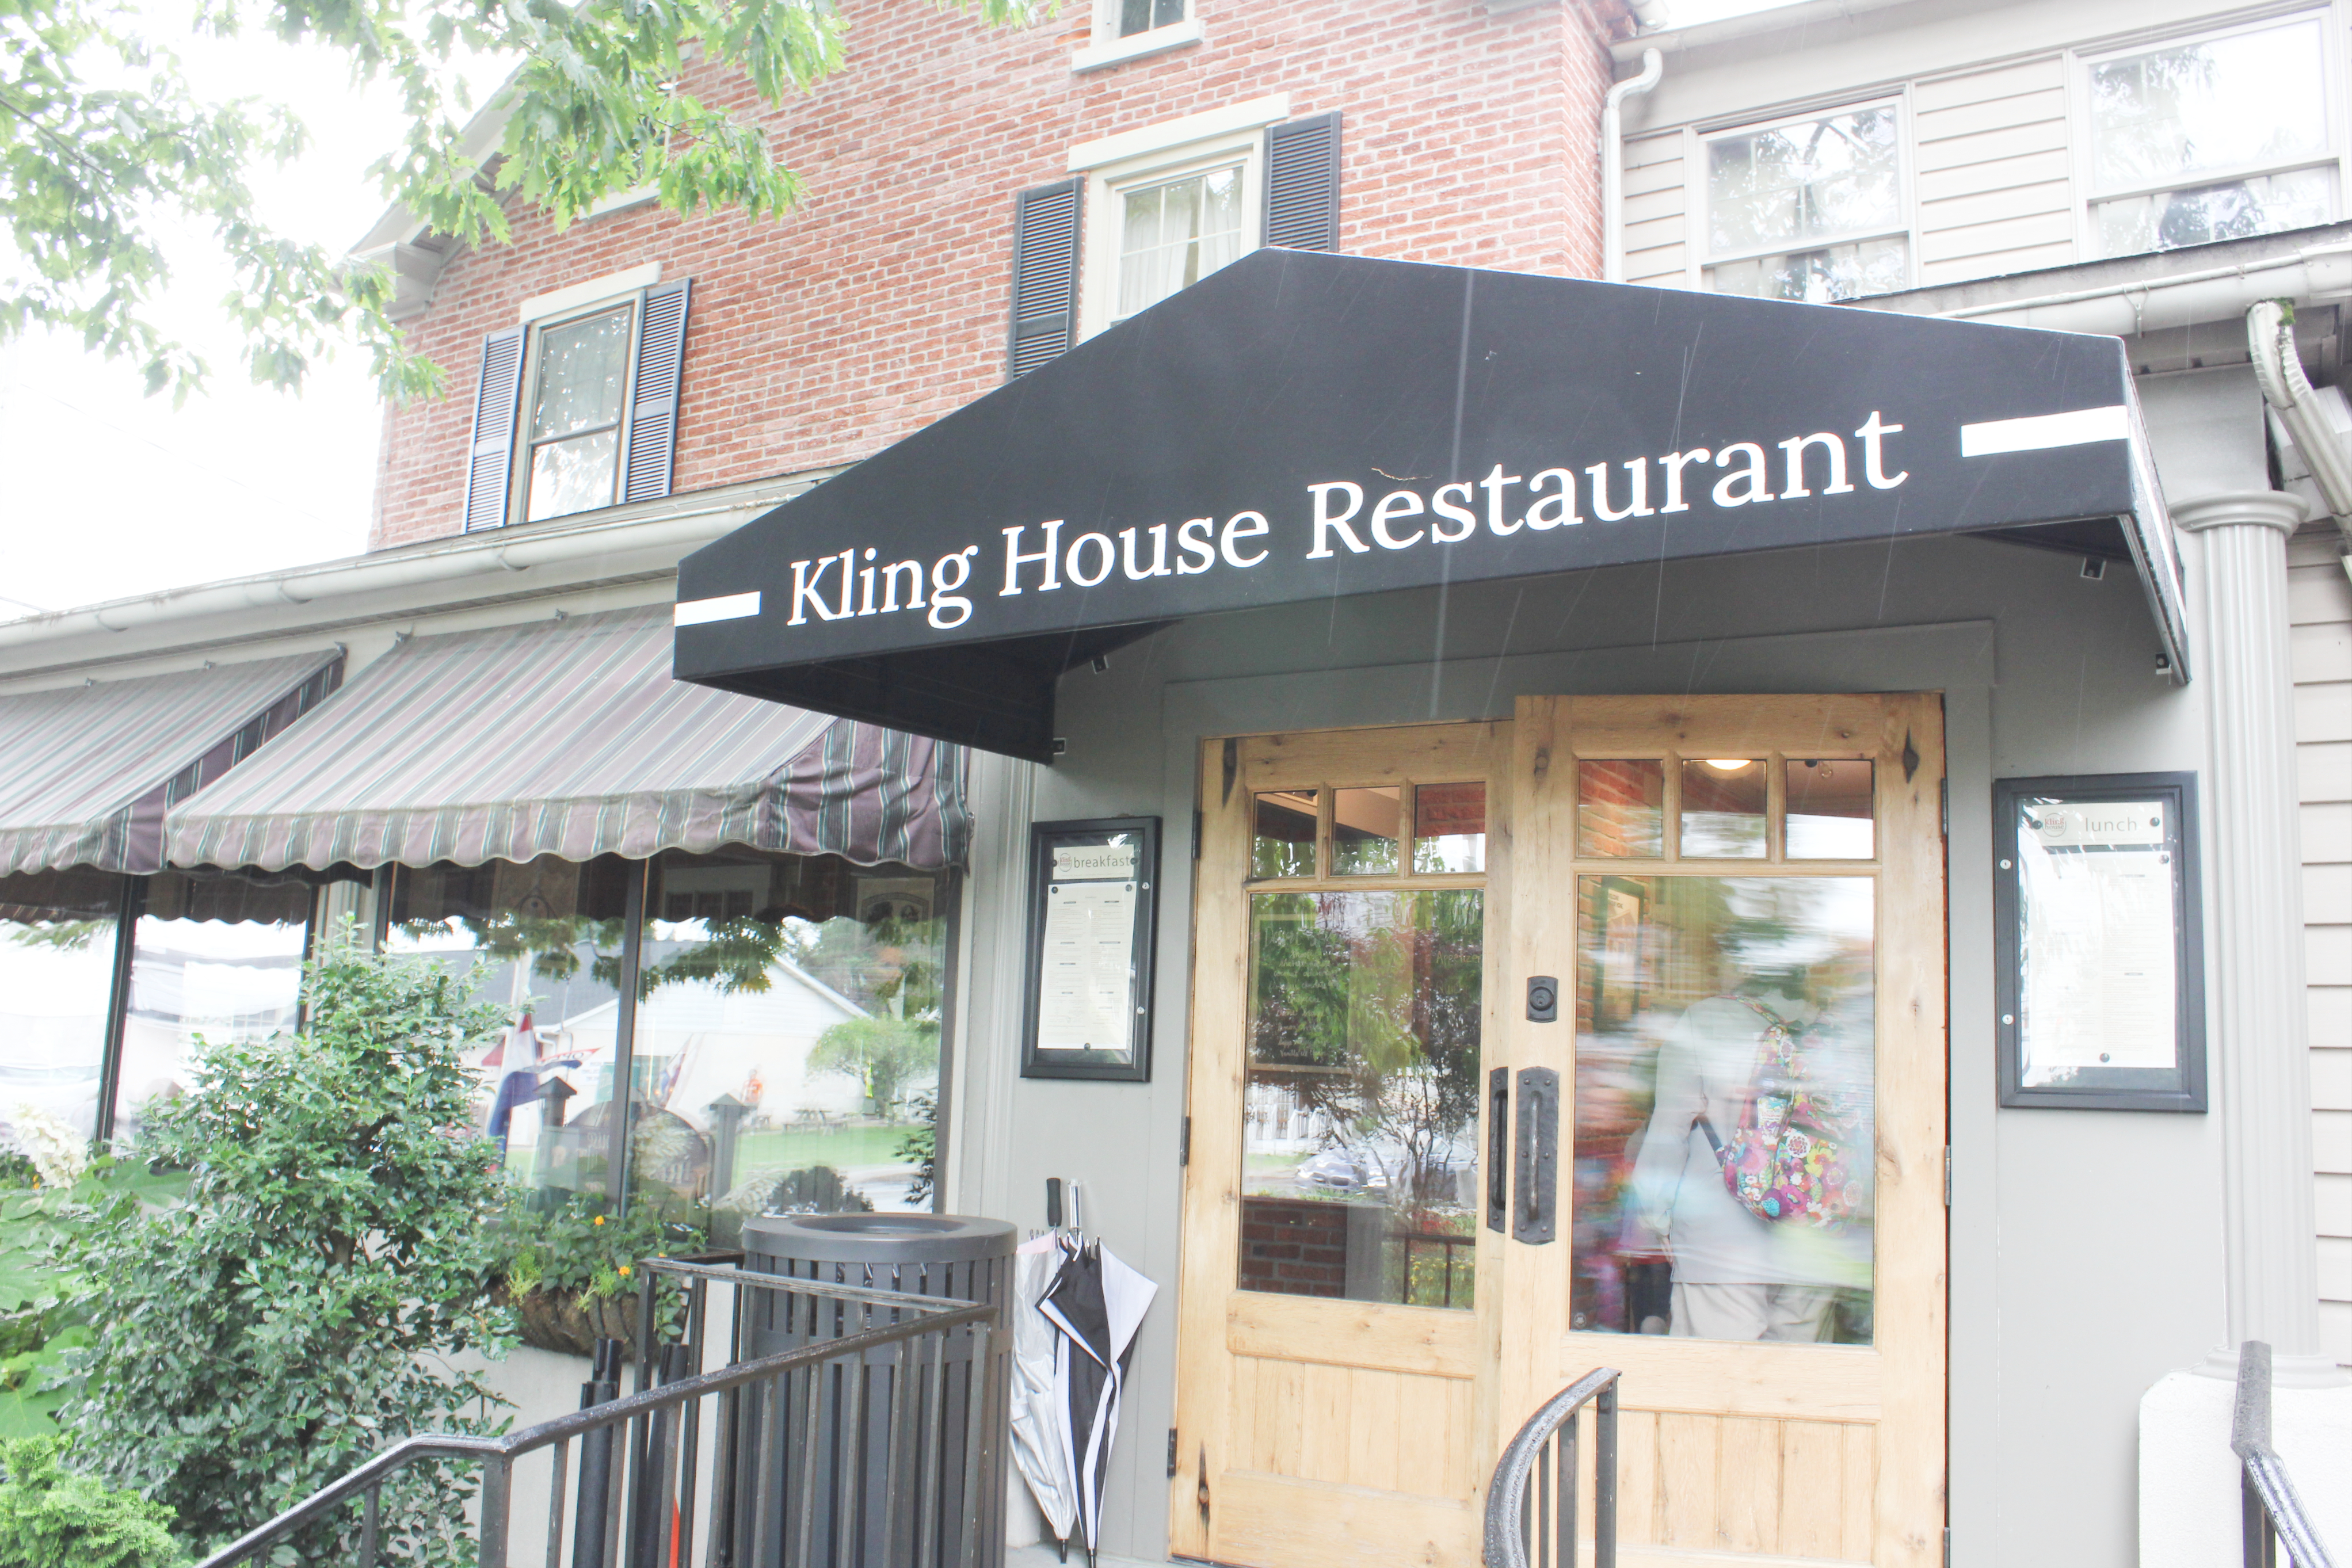 Before Being Turned Into A Restaurant This Was The House Of Several Generations Klings And Burnleys Co Founders Kitchen Kettle Village